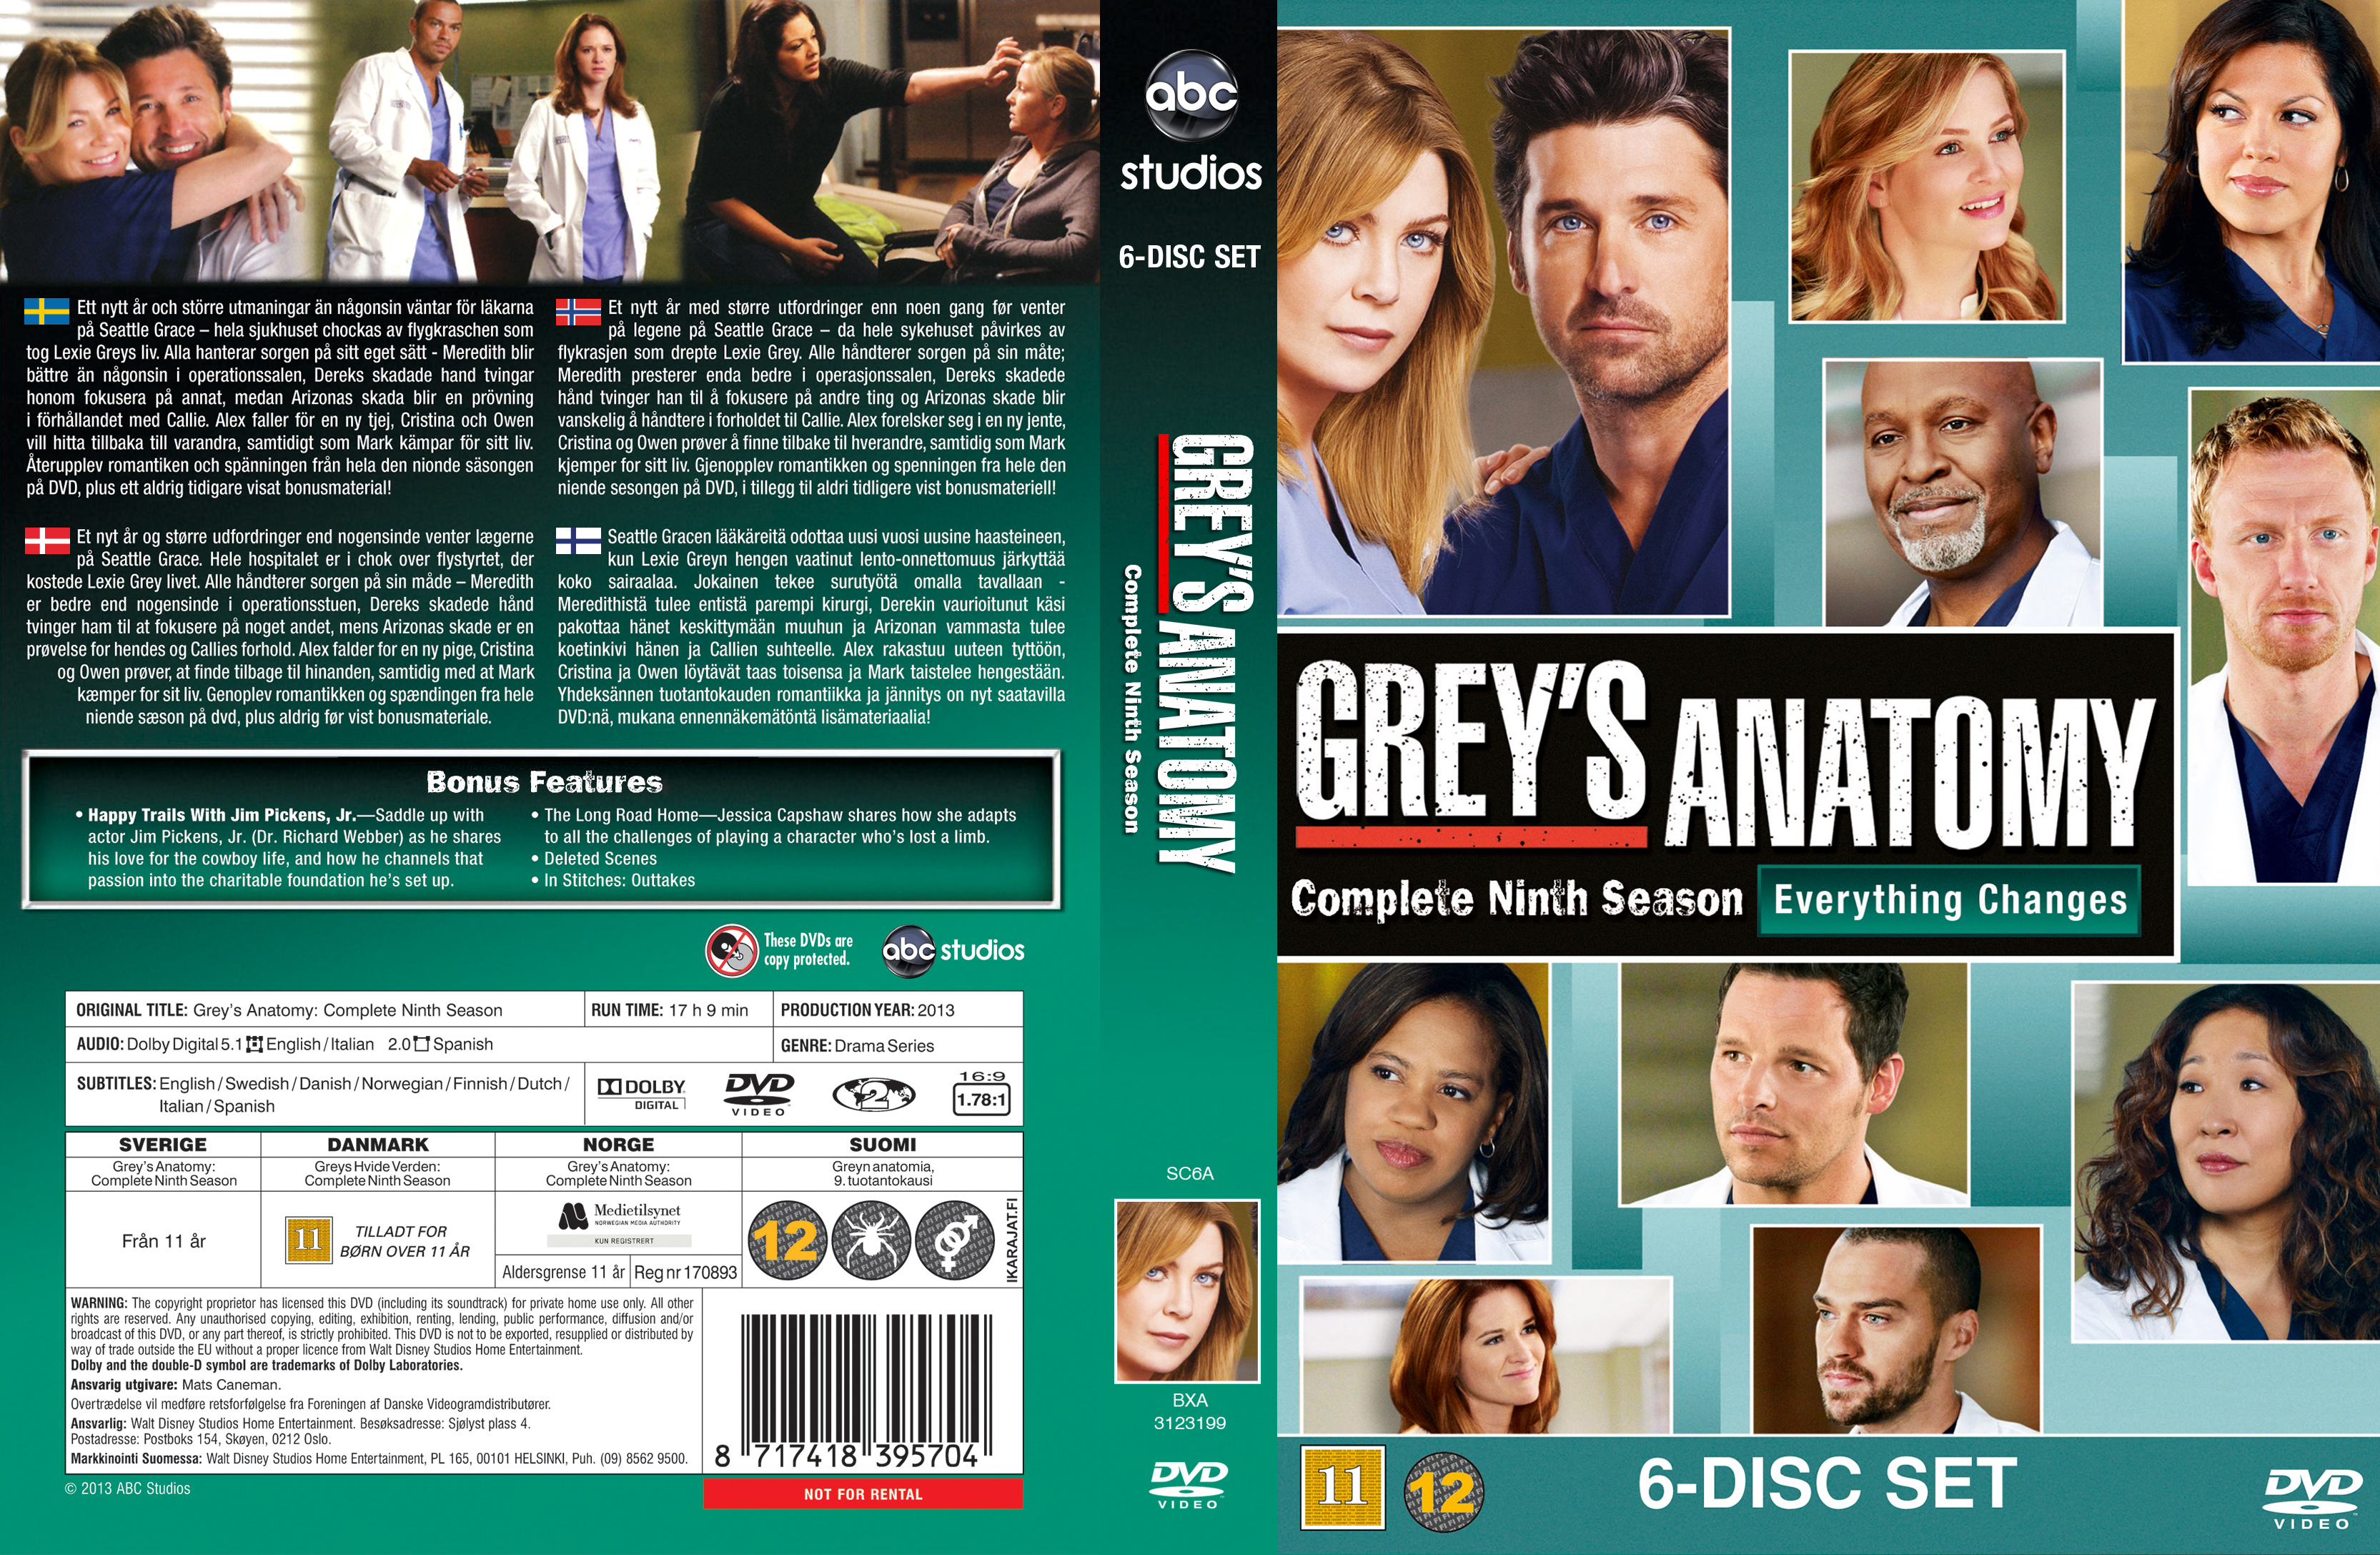 What happened at the end of greys anatomy season 9 - Cinema st ...